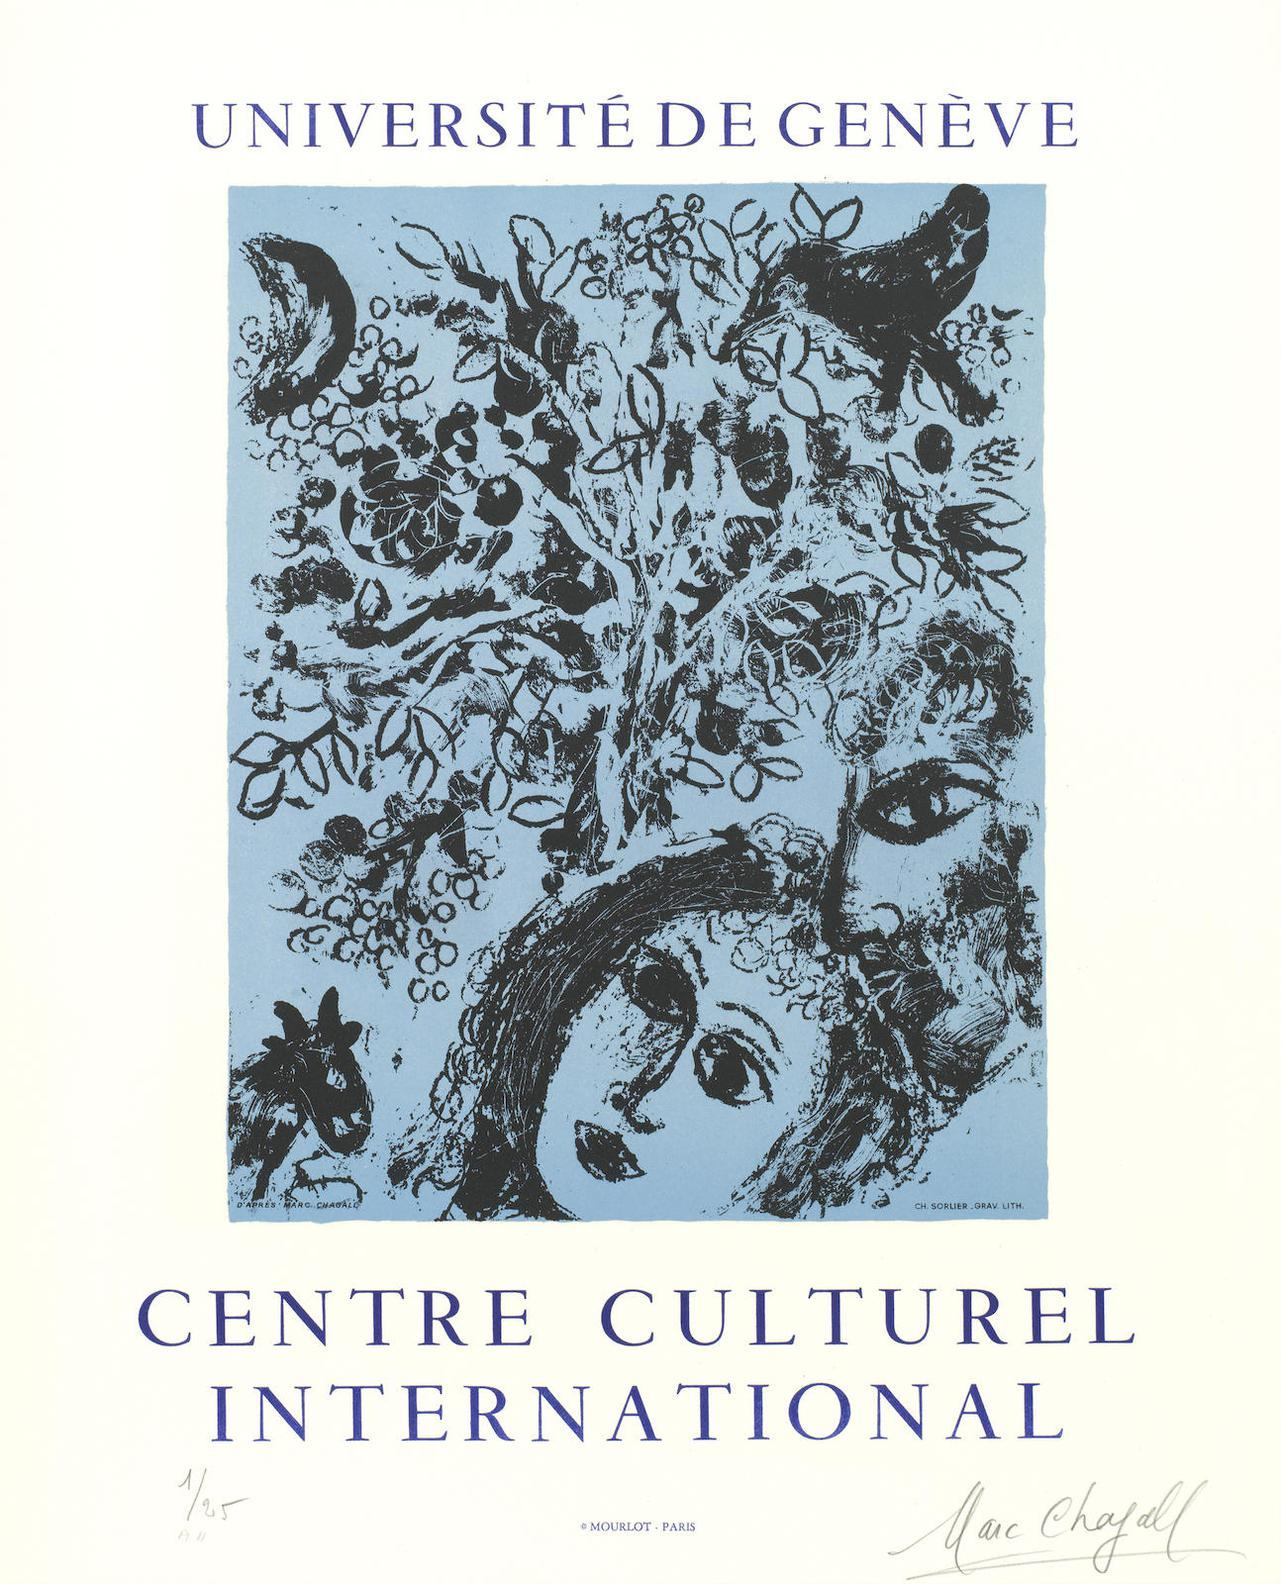 Marc Chagall-Universite De Geneve, Centre Culturel International-1971